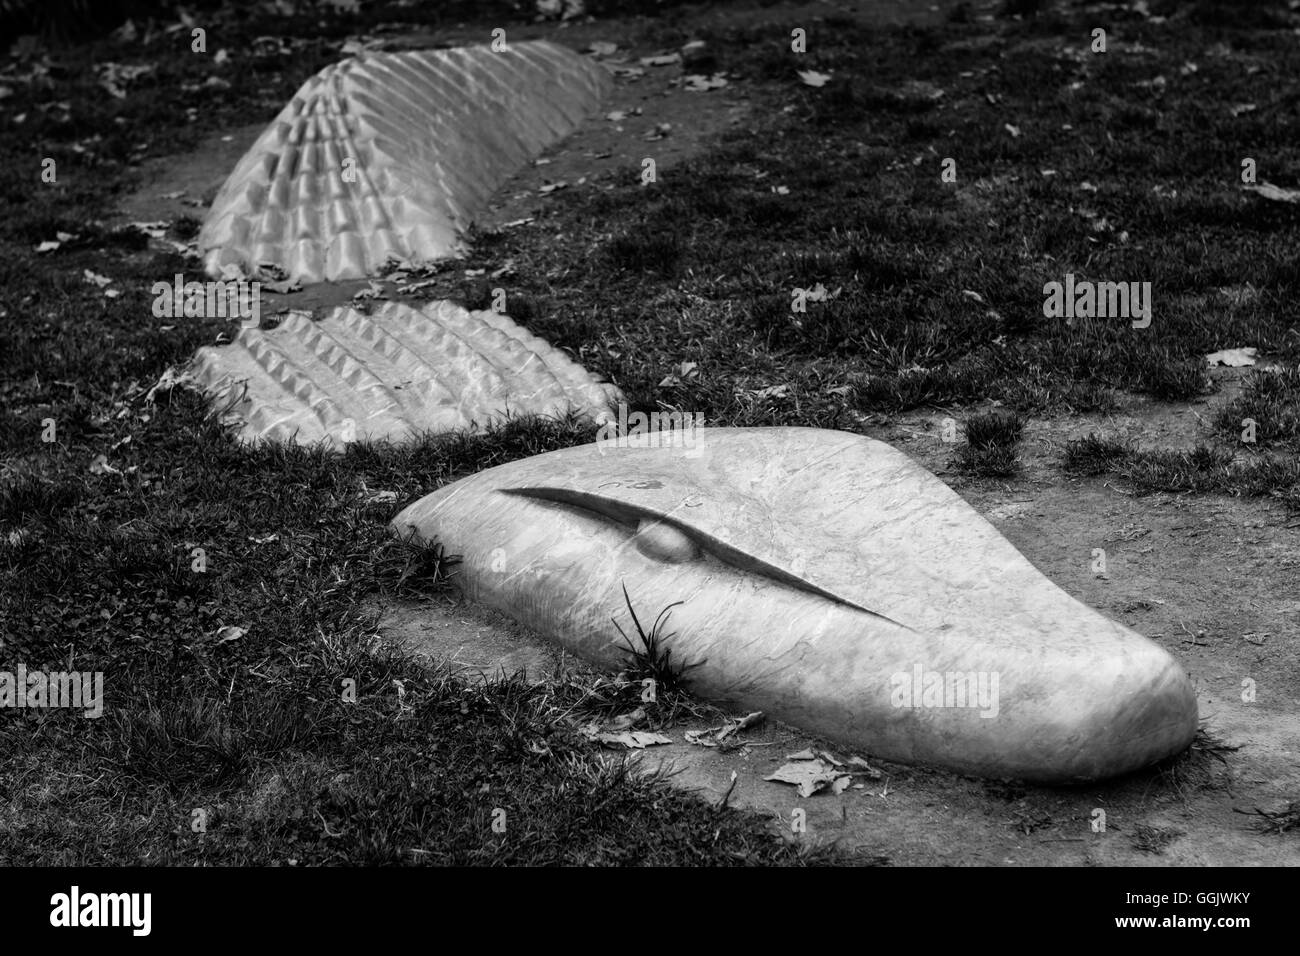 A marble crocodile emerging from the grass - Stock Image